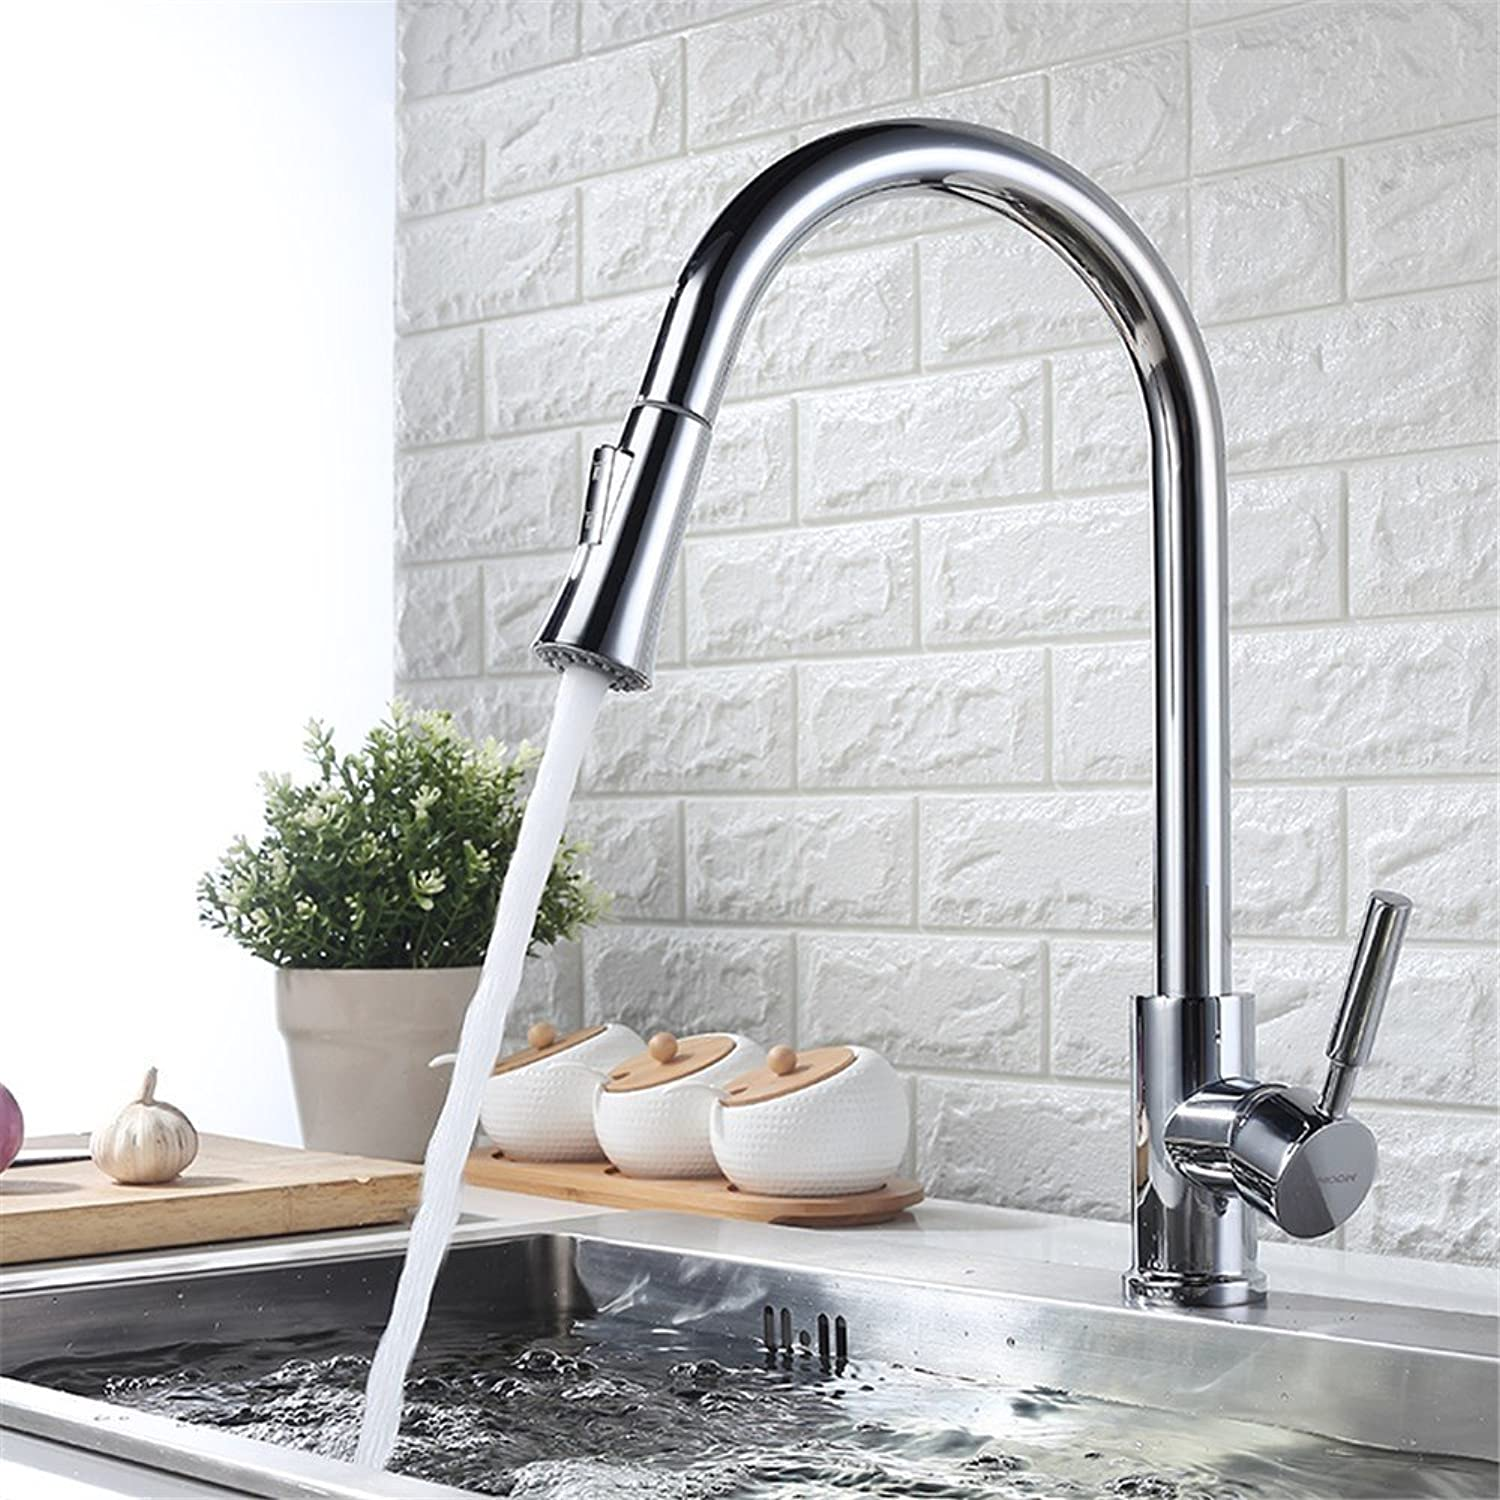 Decorry Cold Drawing The Whole Kitchen Faucet Mixer 304 Stainless Steel Vegetables Basin Faucet Copper redatable Ceramic Valve Core, F-BIS Paragraph Satin Water -Jomoow